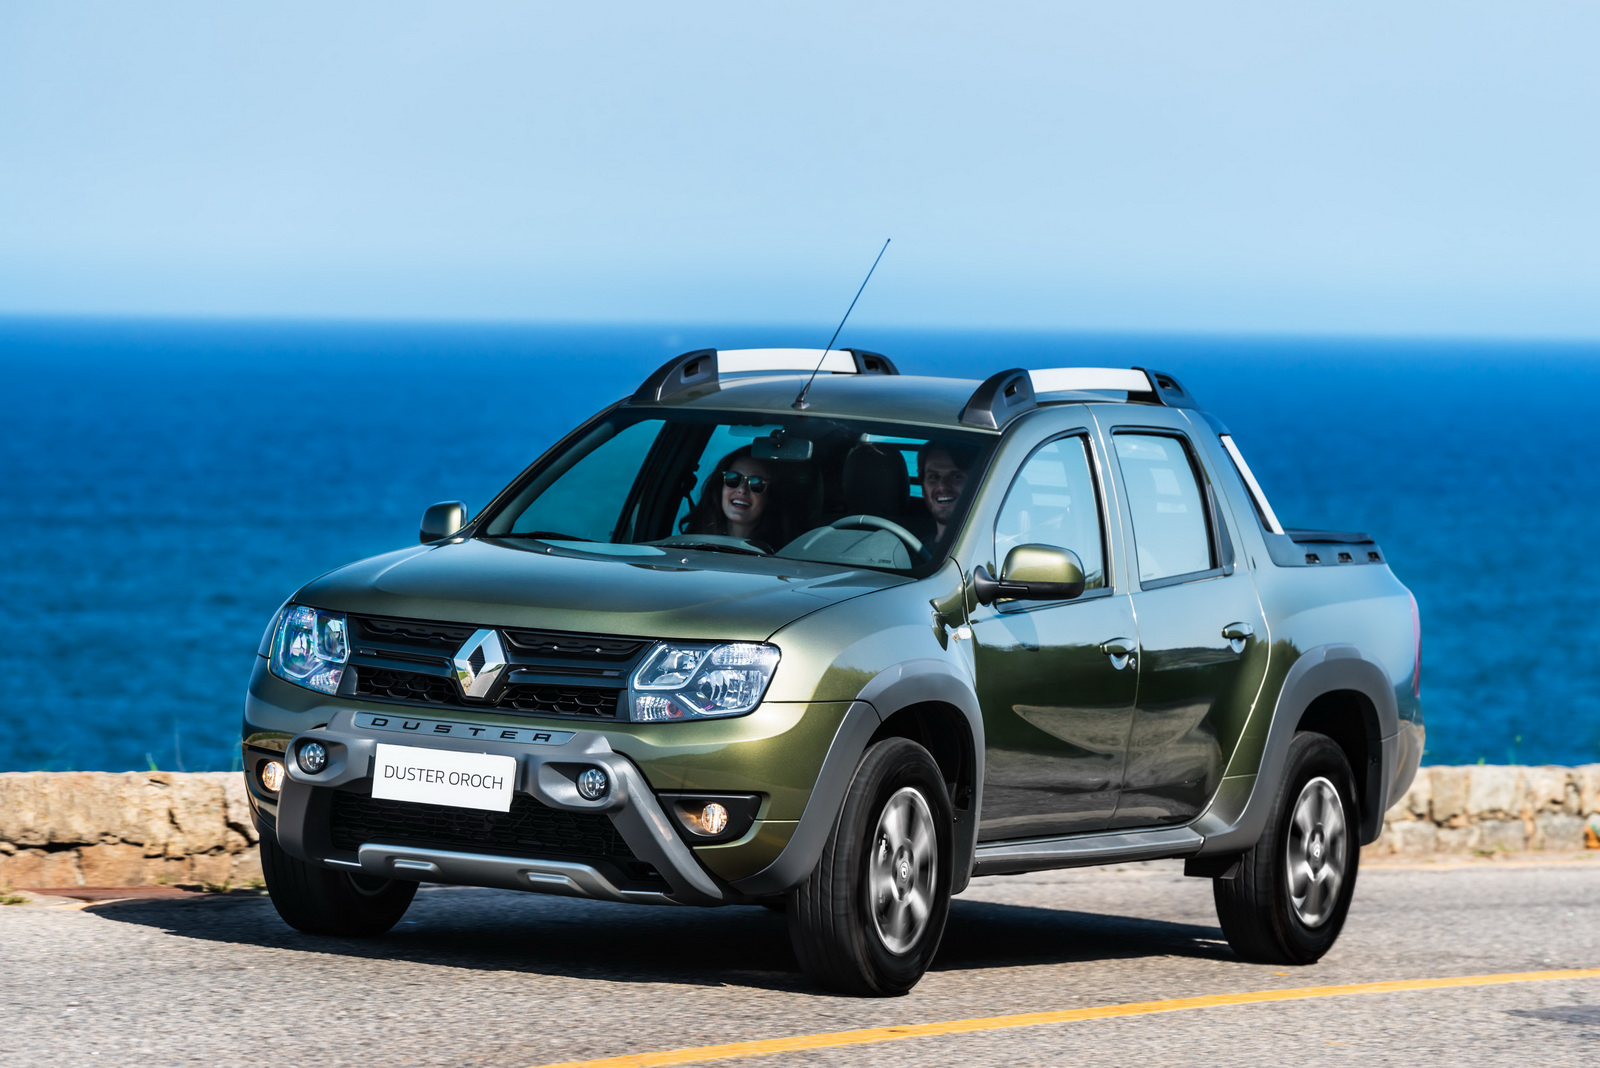 renault duster oroch pick up truck launched in brazil starts at inr lakh converted. Black Bedroom Furniture Sets. Home Design Ideas